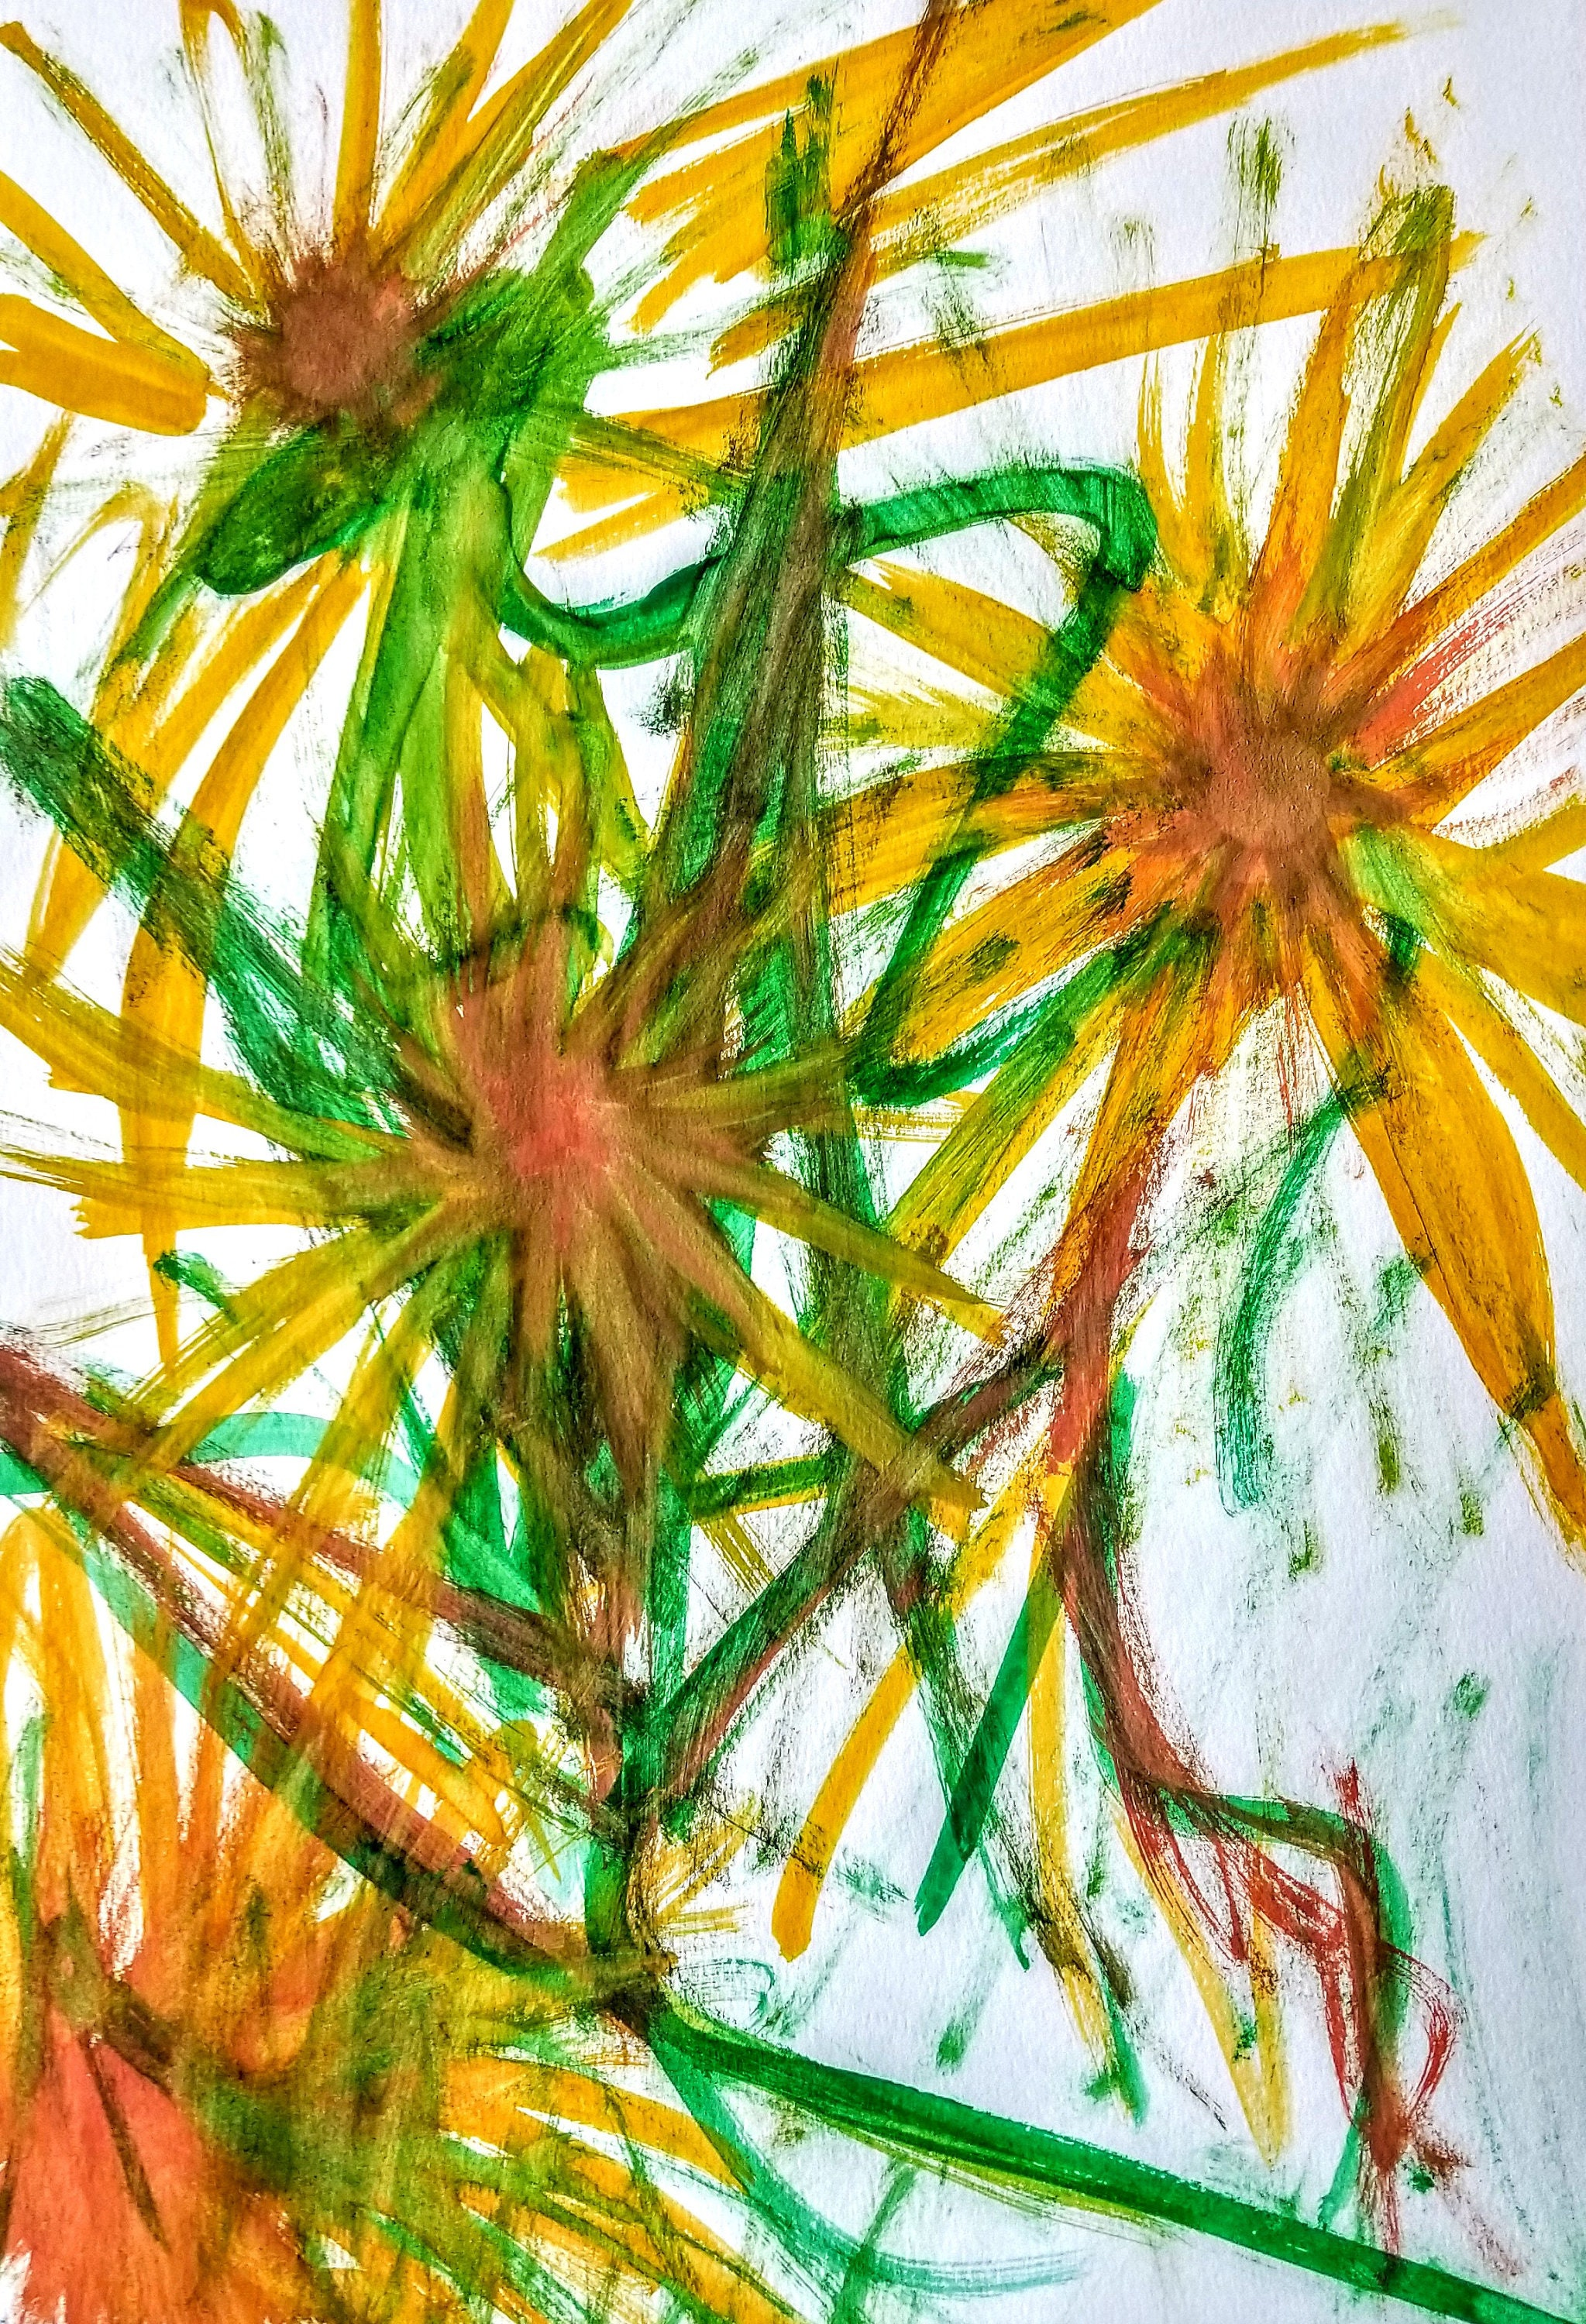 Abstract Sunflowers #14 - Art, Artwork, Abstract, Wall Art, Home ...